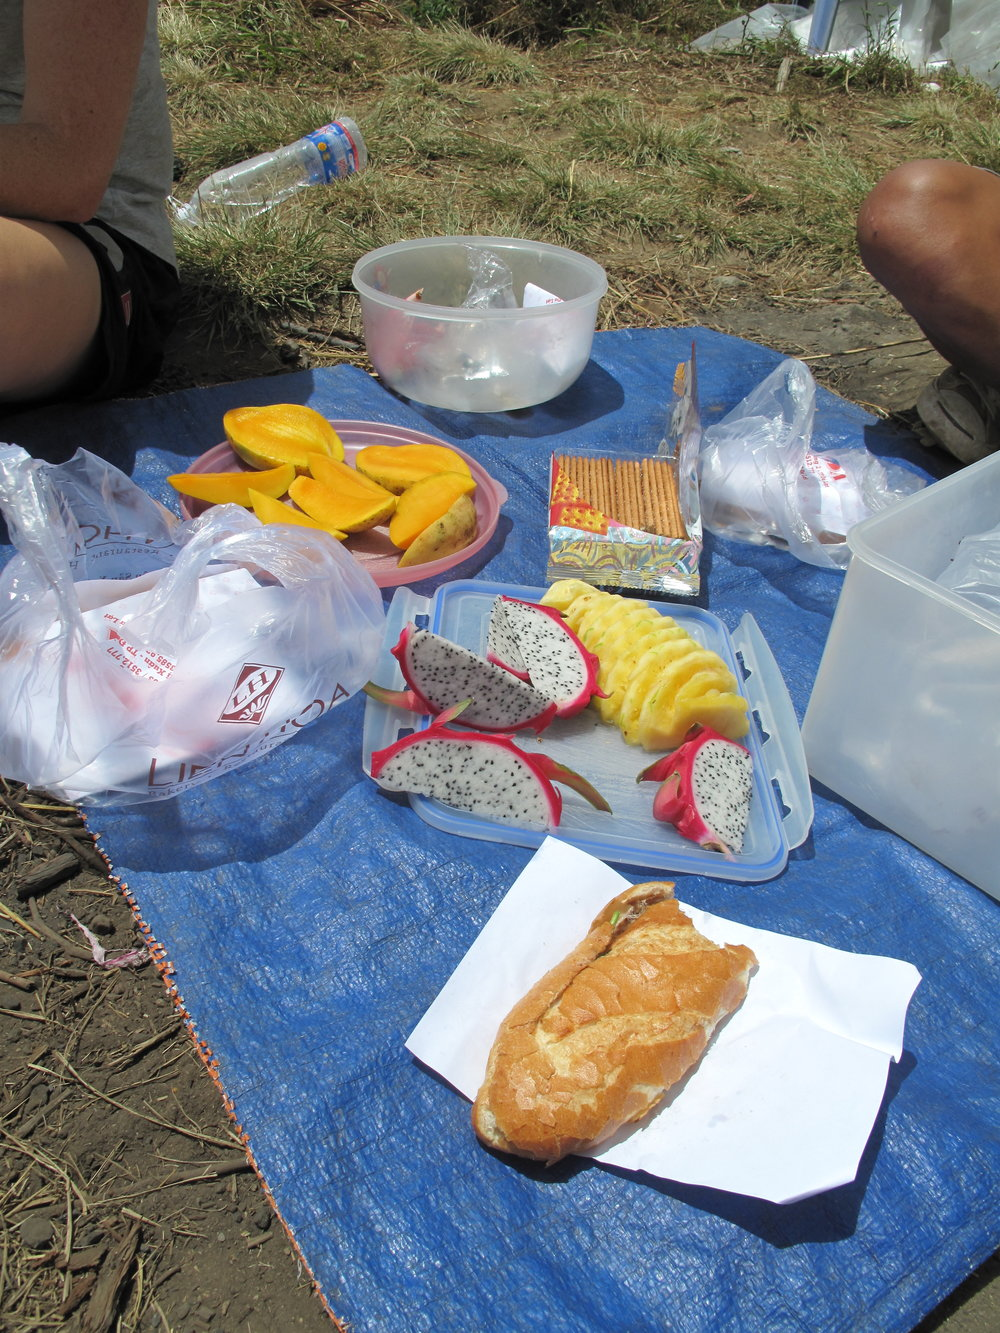 The lunch spread, Three Peaks hike, Dalat